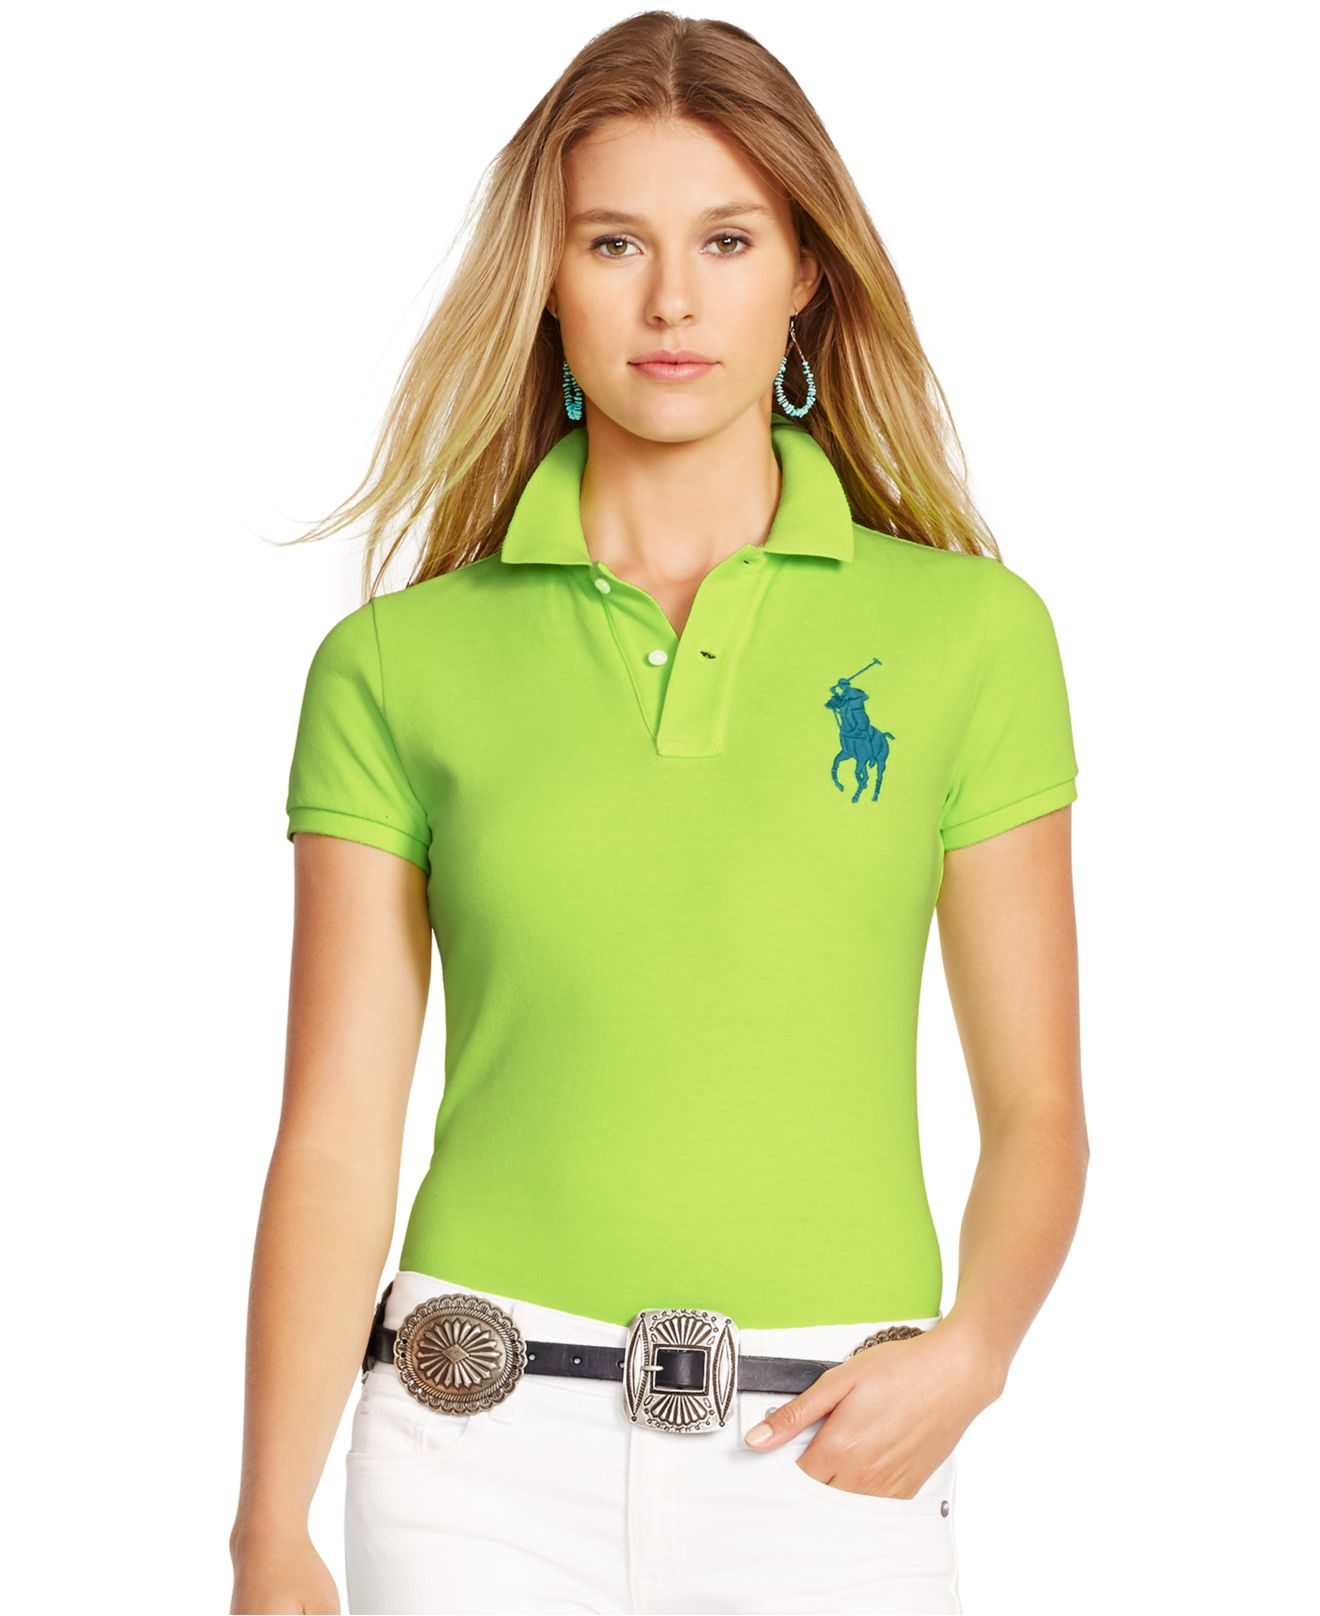 ralph lauren big pony polo shirts for wo male models picture. Black Bedroom Furniture Sets. Home Design Ideas